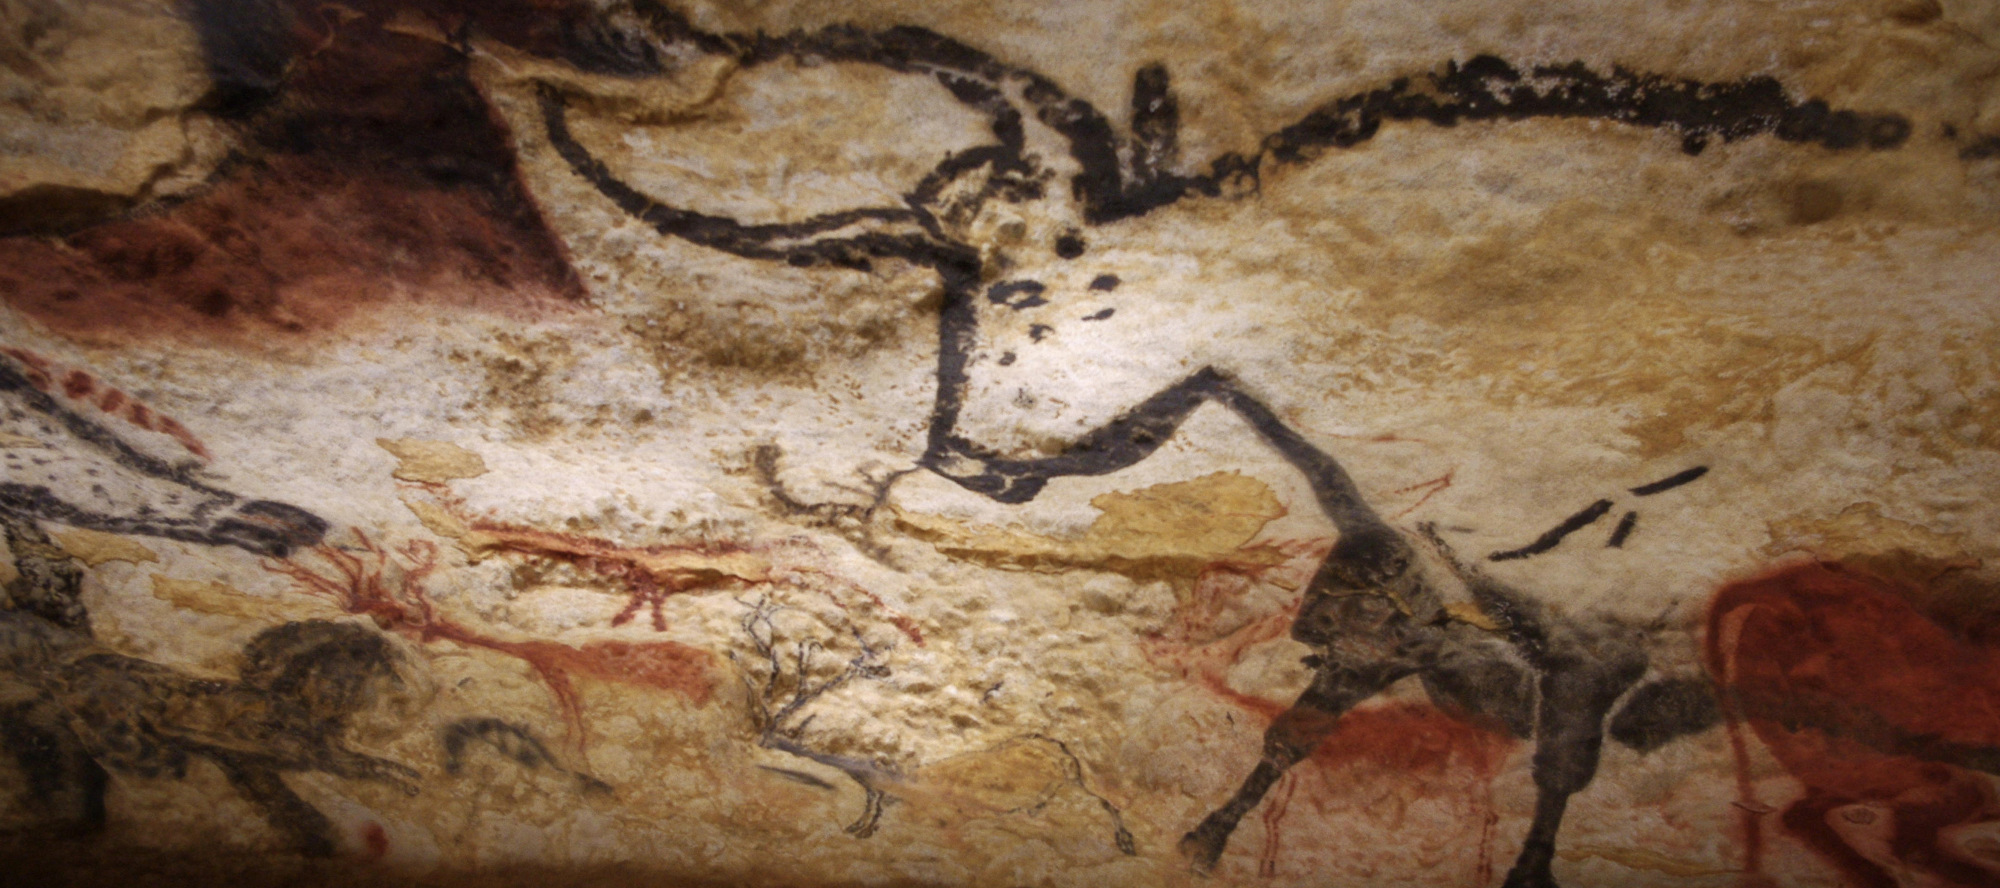 Picture of an ox in the walls of the caves in Lascaux